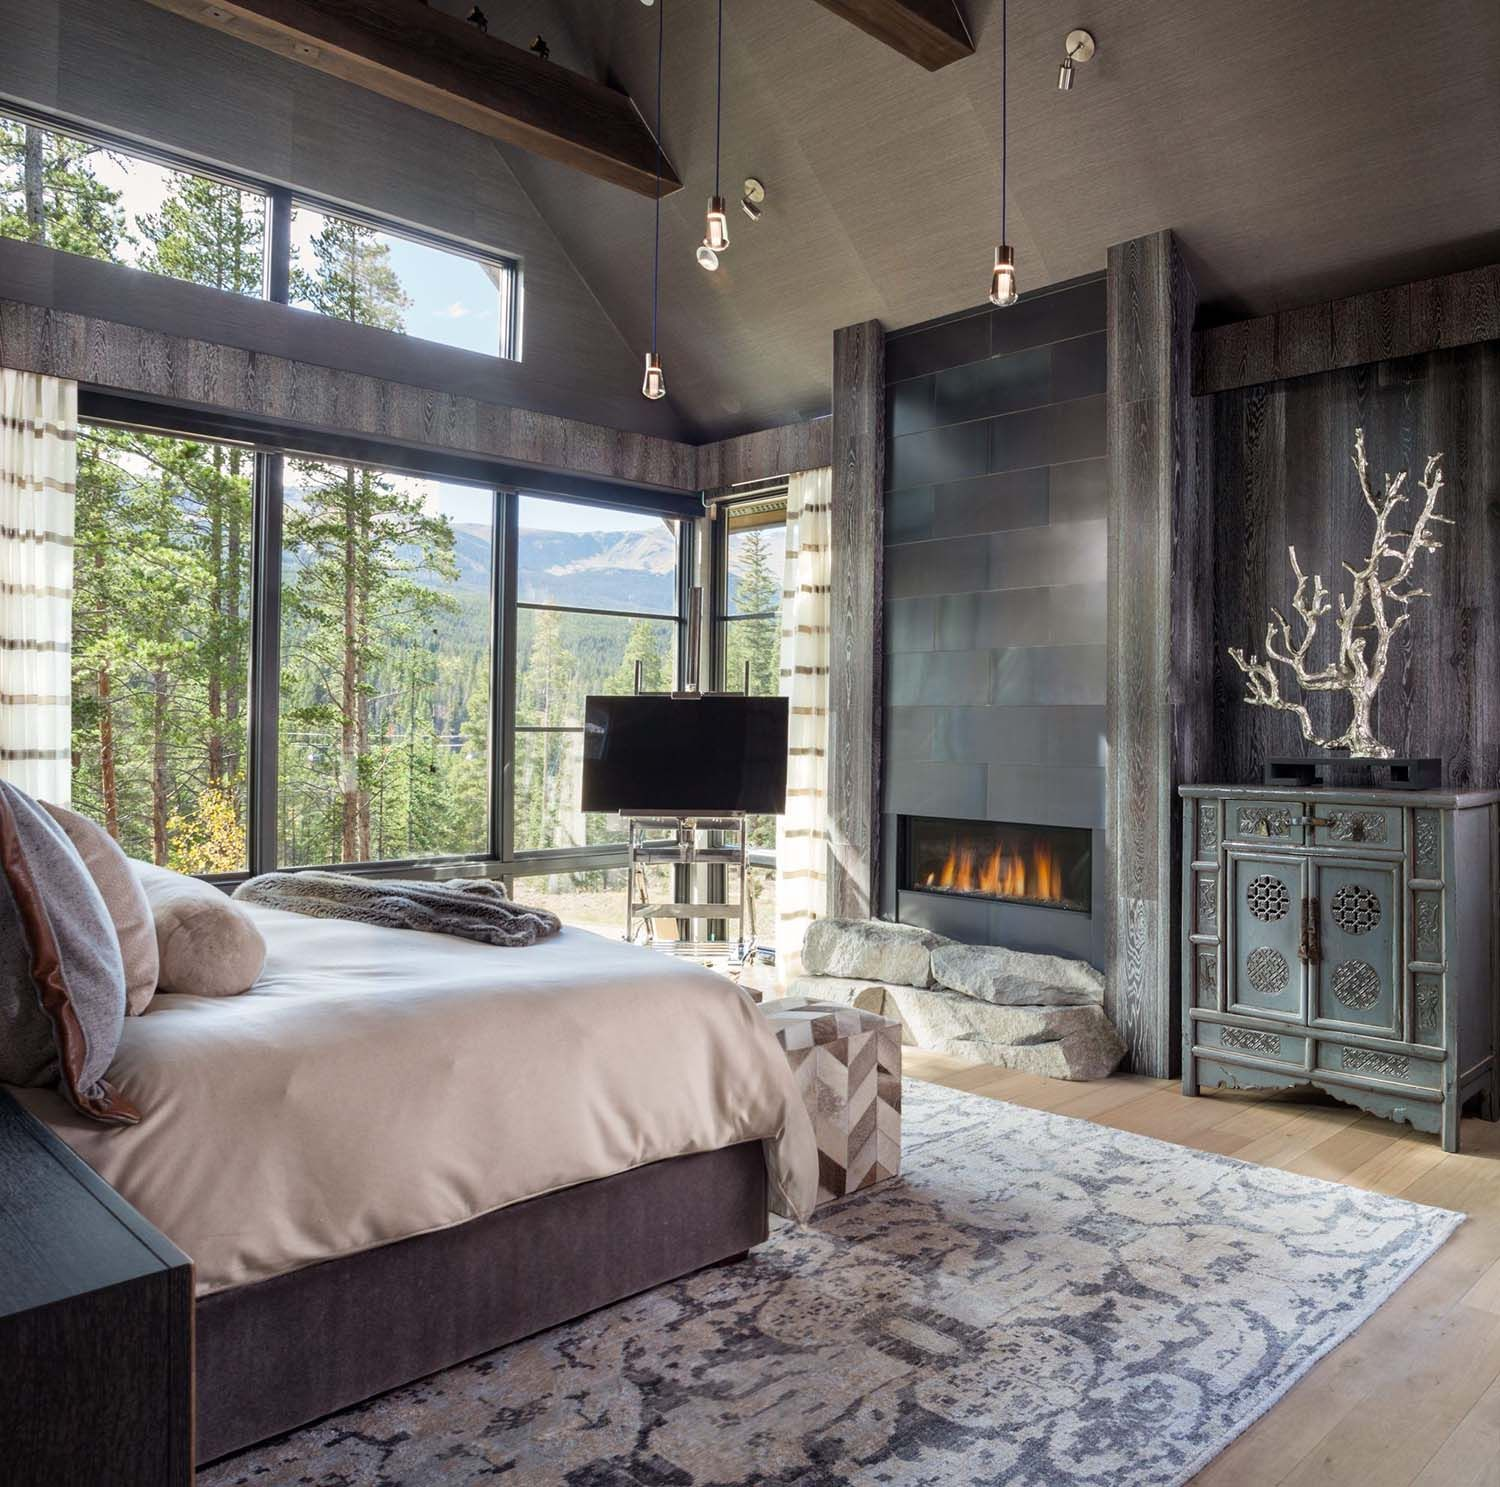 Modern Classic And Rustic Bedrooms: Mountain Chalet In Colorado Showcases Rustic-contemporary